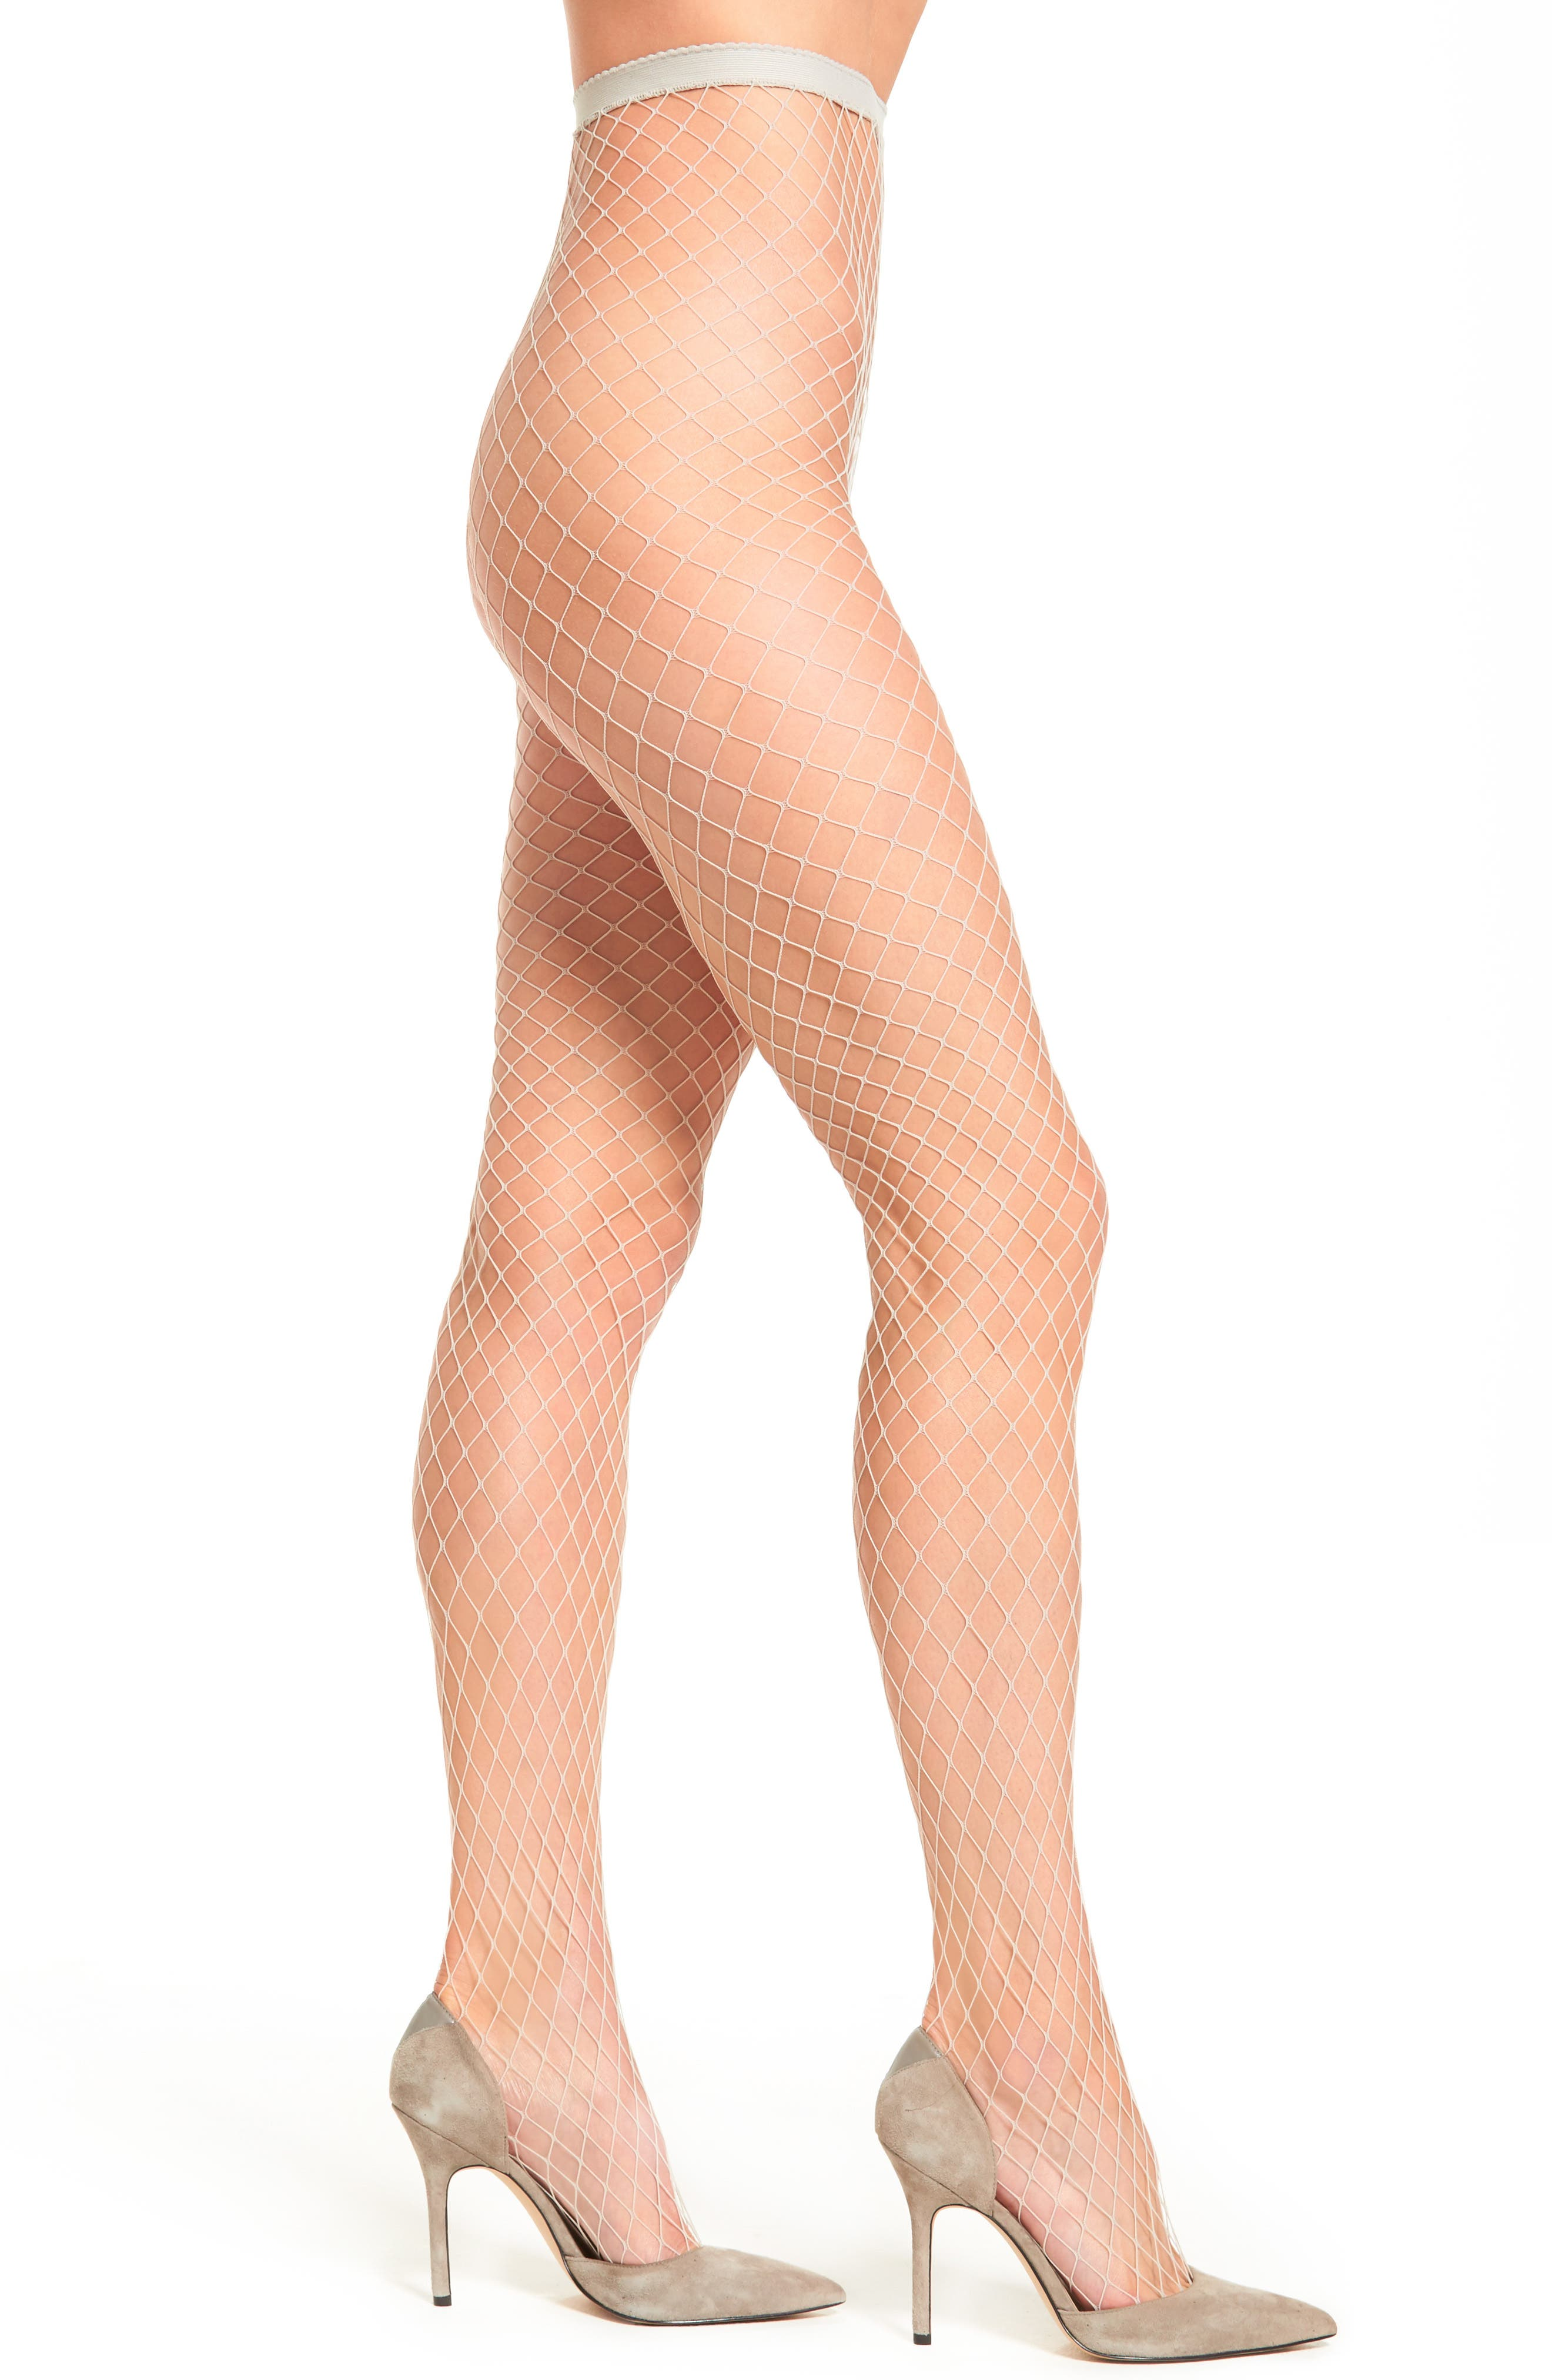 Libby Fishnet Tights,                         Main,                         color, 250